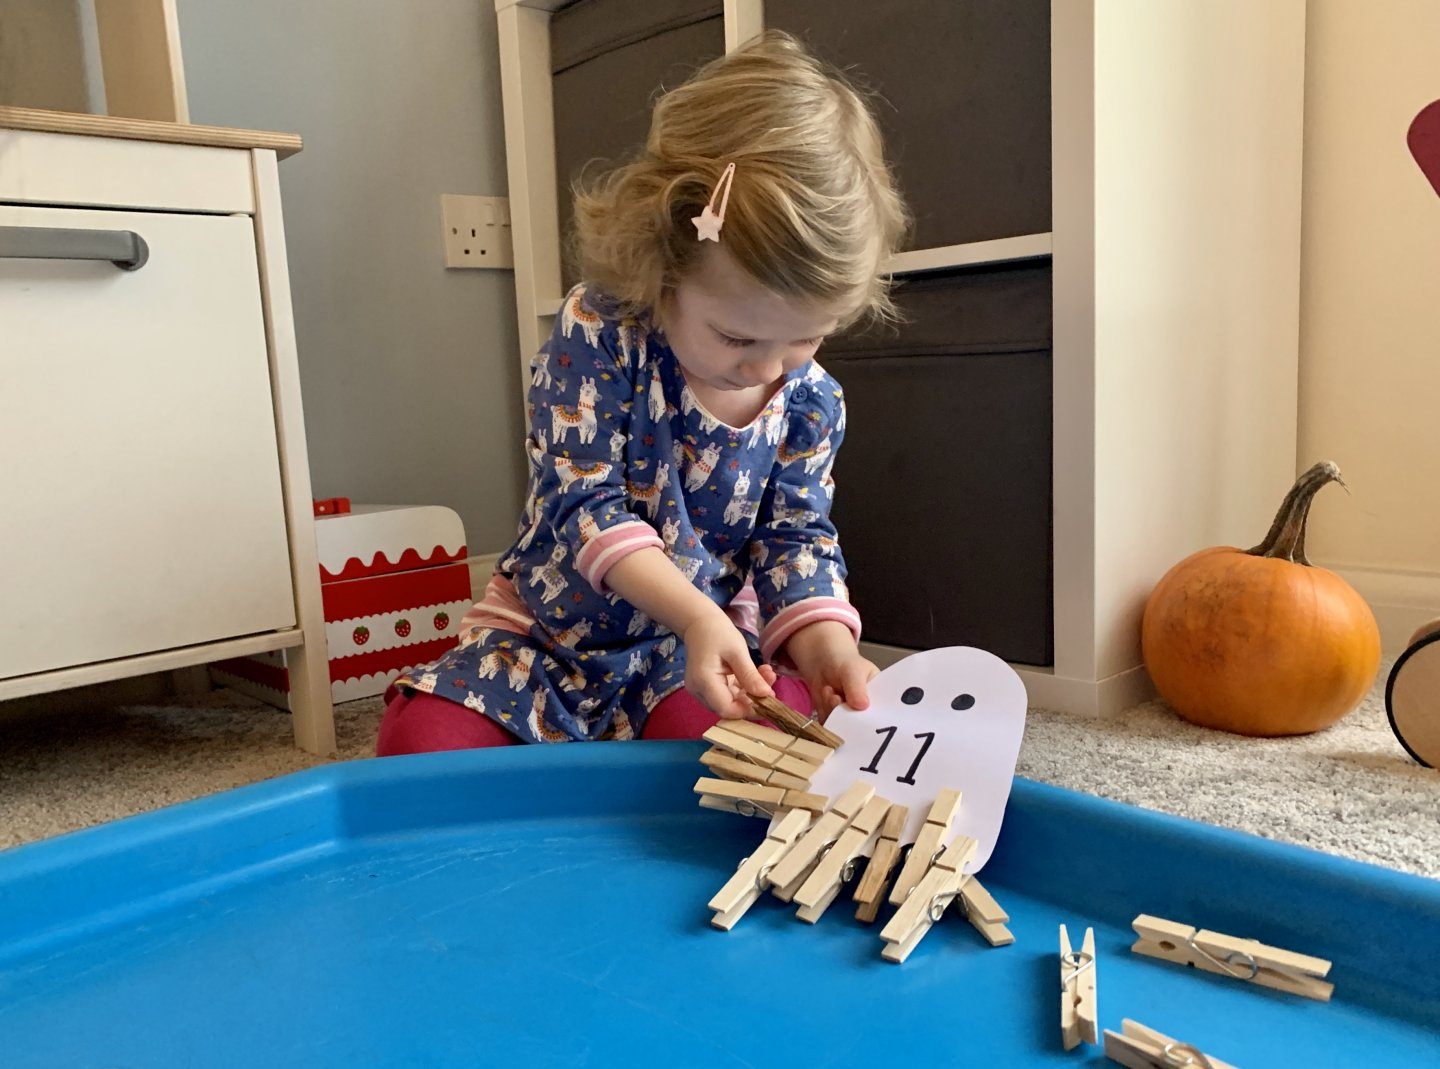 M clips a peg onto a ghost with the number 11 written on it. There are already 10 pegs on the ghost.